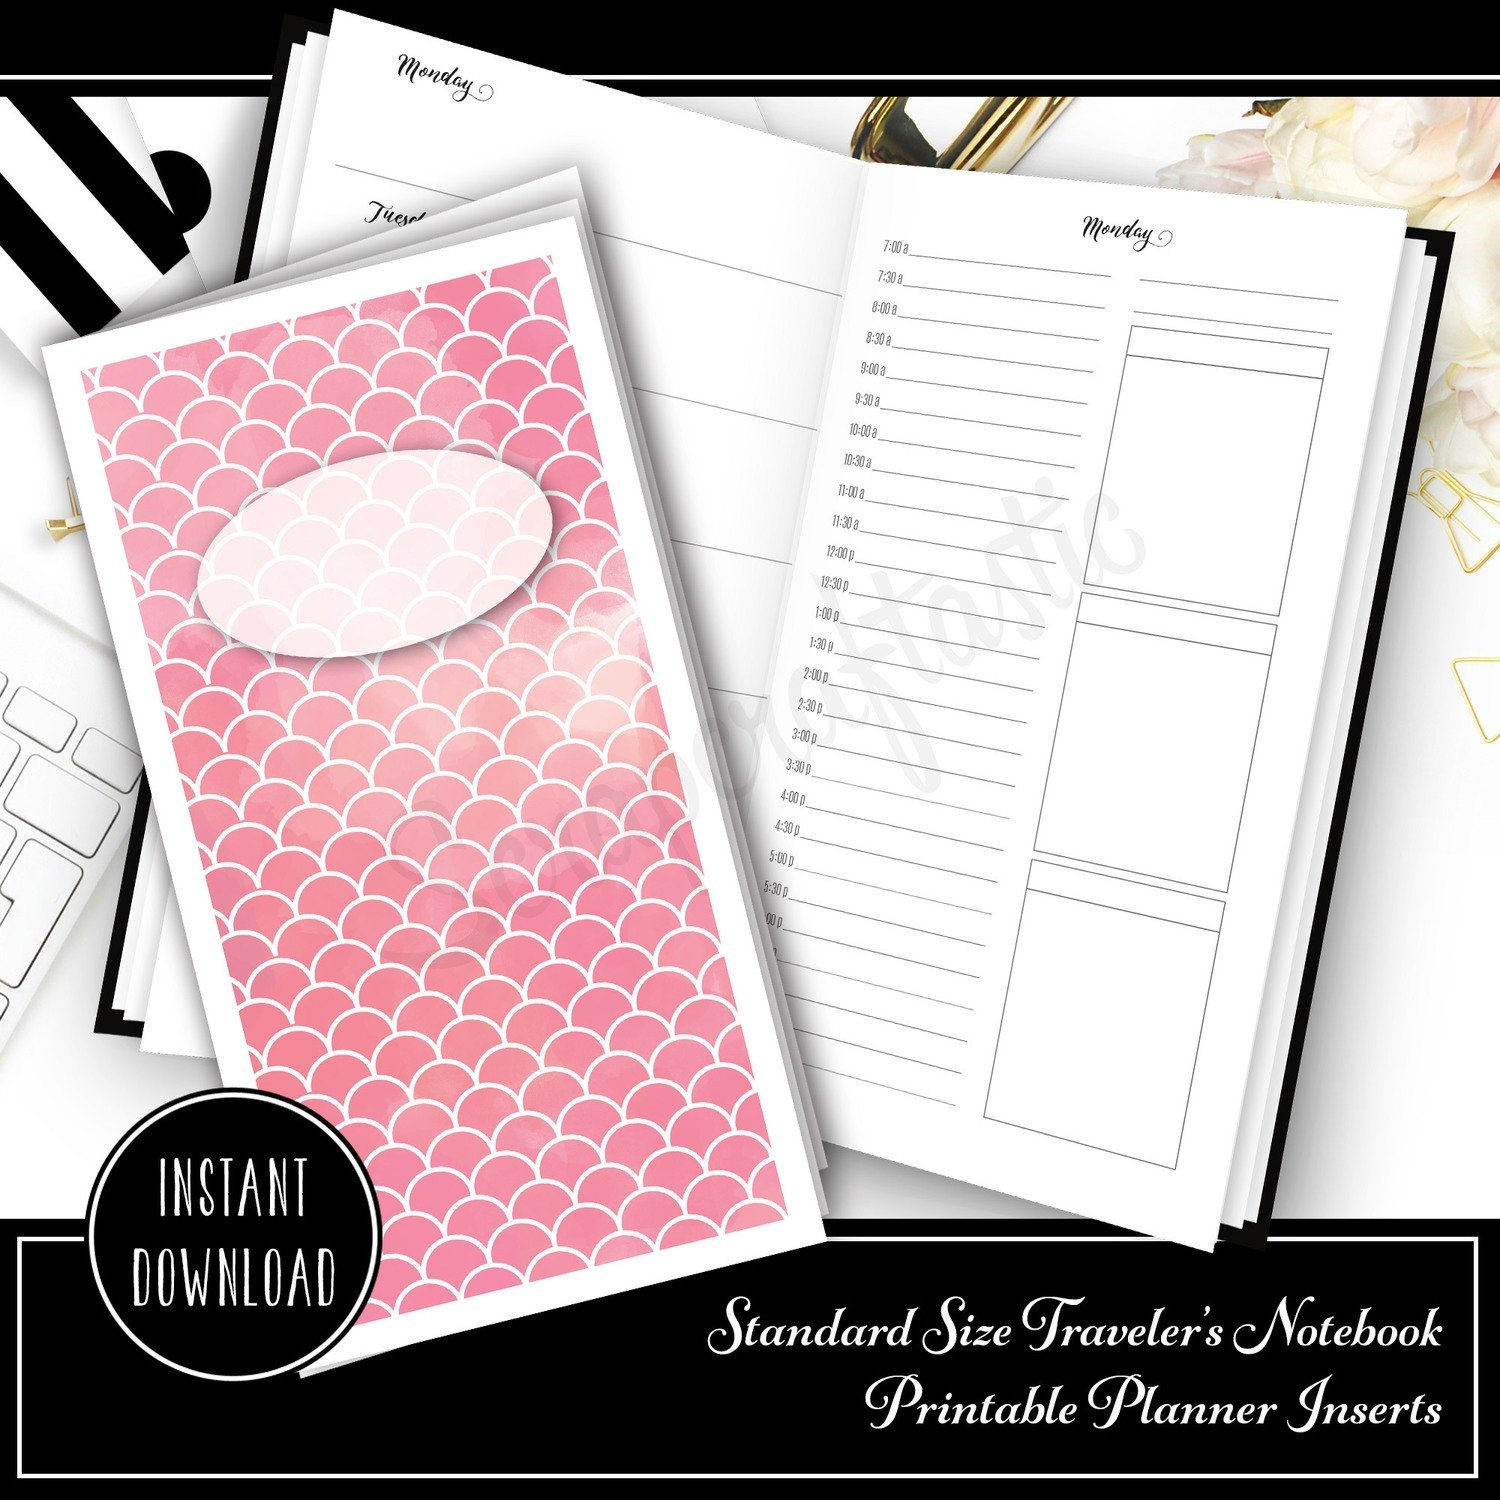 Full Month Notebook: Daily Standard Size with MO2P, WO1P Horizontal and DO1P Daily Schedule Pages Printable